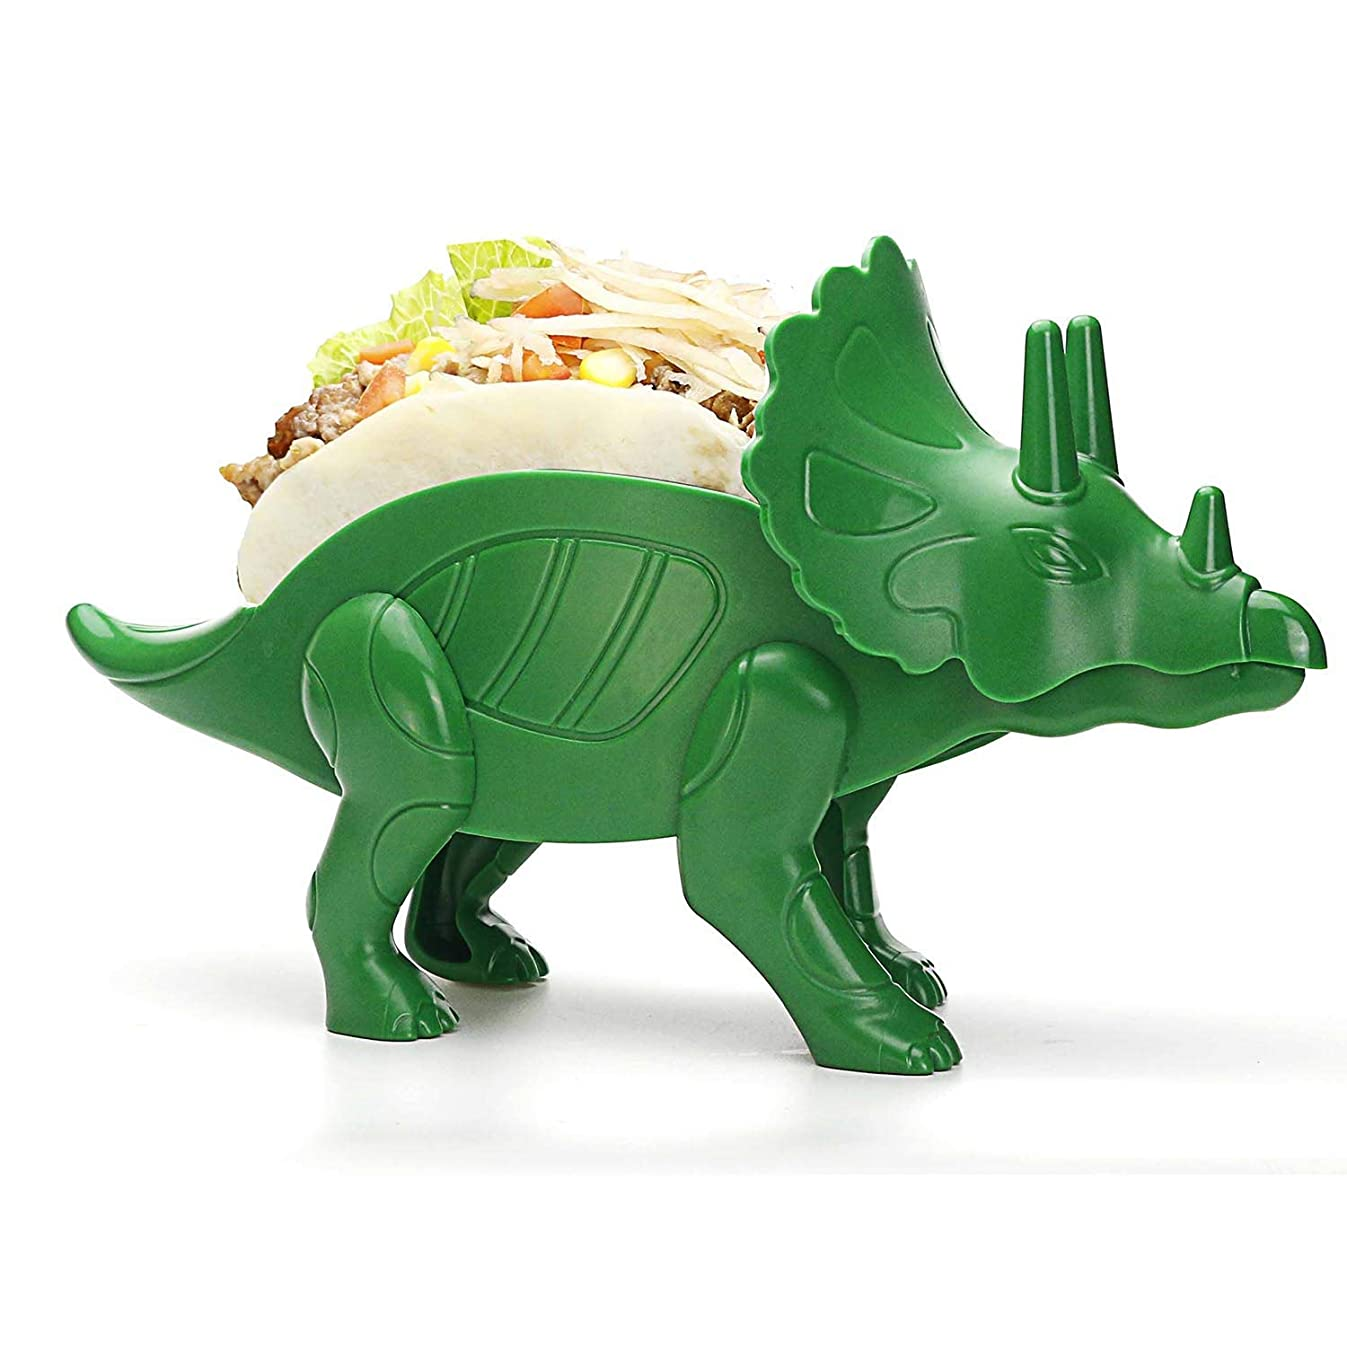 Teapeak Dino Taco Holder - Triceratops Taco stand for Jurassic Taco Tuesday and Dinosaur Parties- Holds 2 Tacos-Perfect Gift for the Kids! (Green)